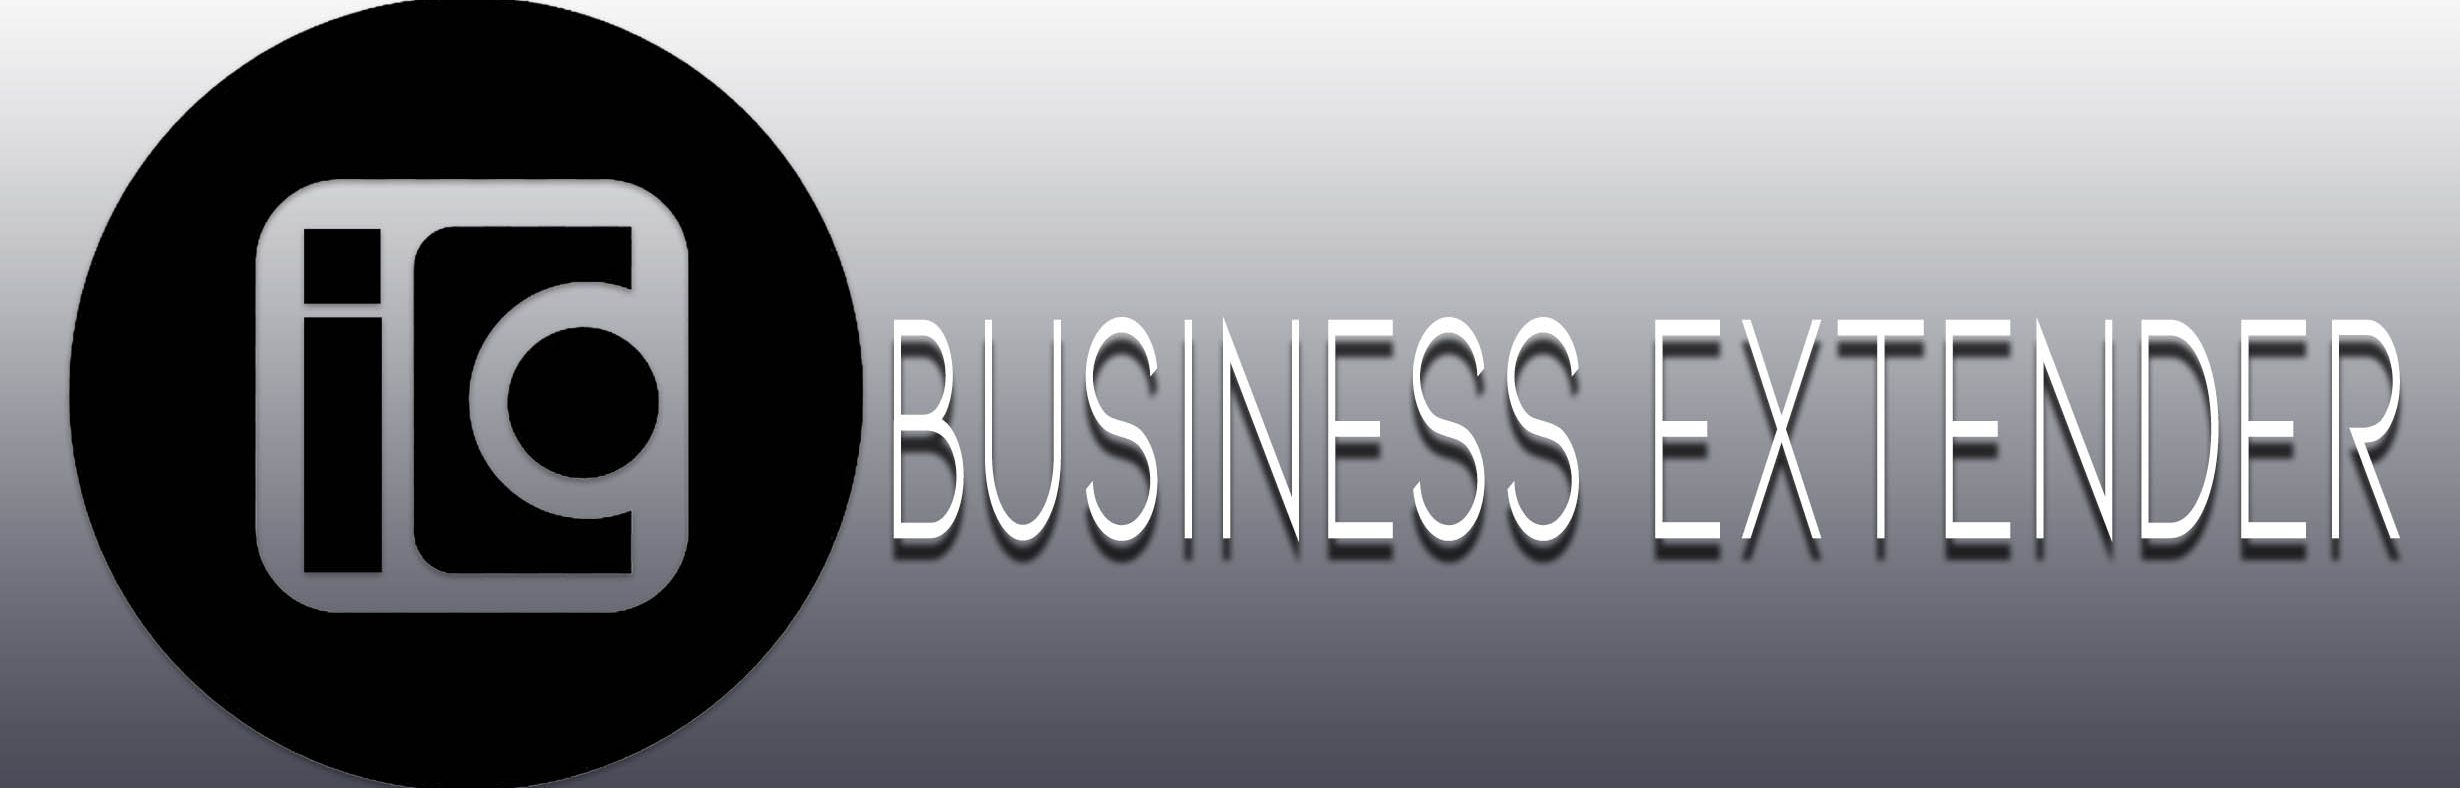 IG BUSINESS EXTENDER